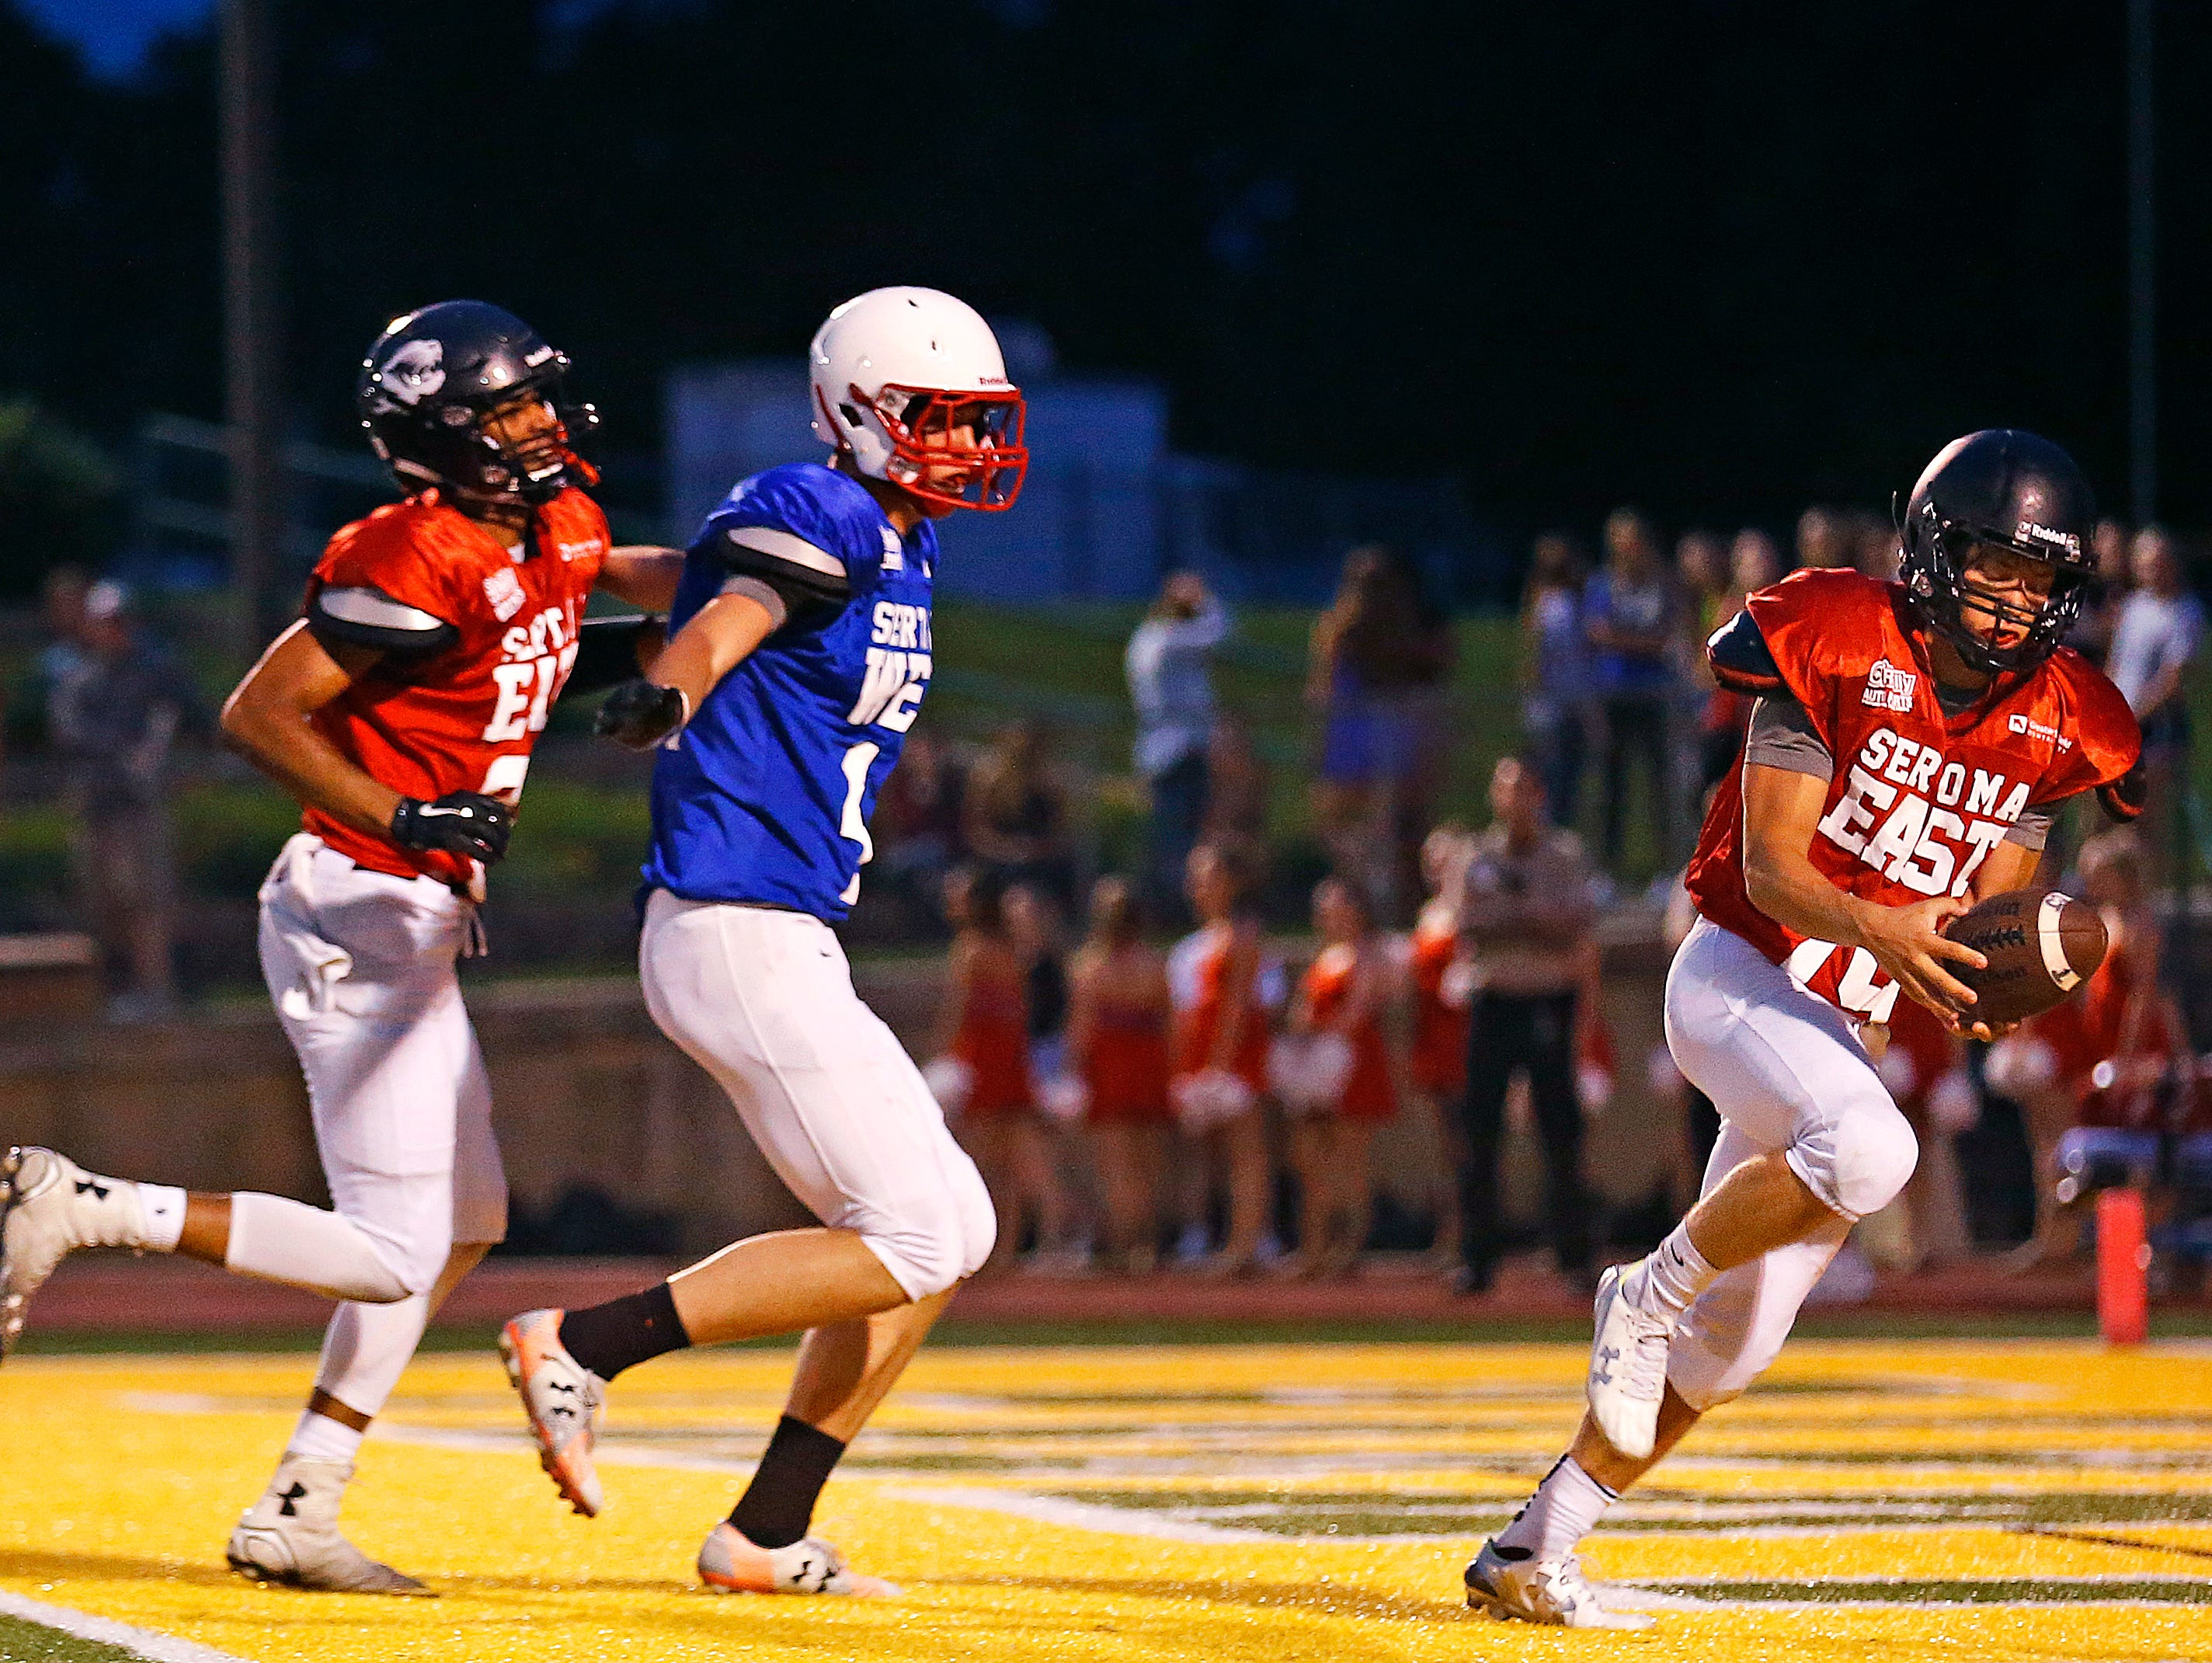 East All-Stars defensive back Conner Hicks (19) grabs his second interception of the night during second quarter action of the Sertoma Grin Iron Classic football game held at JFK Stadium in Springfield, Mo. on June 3, 2016.